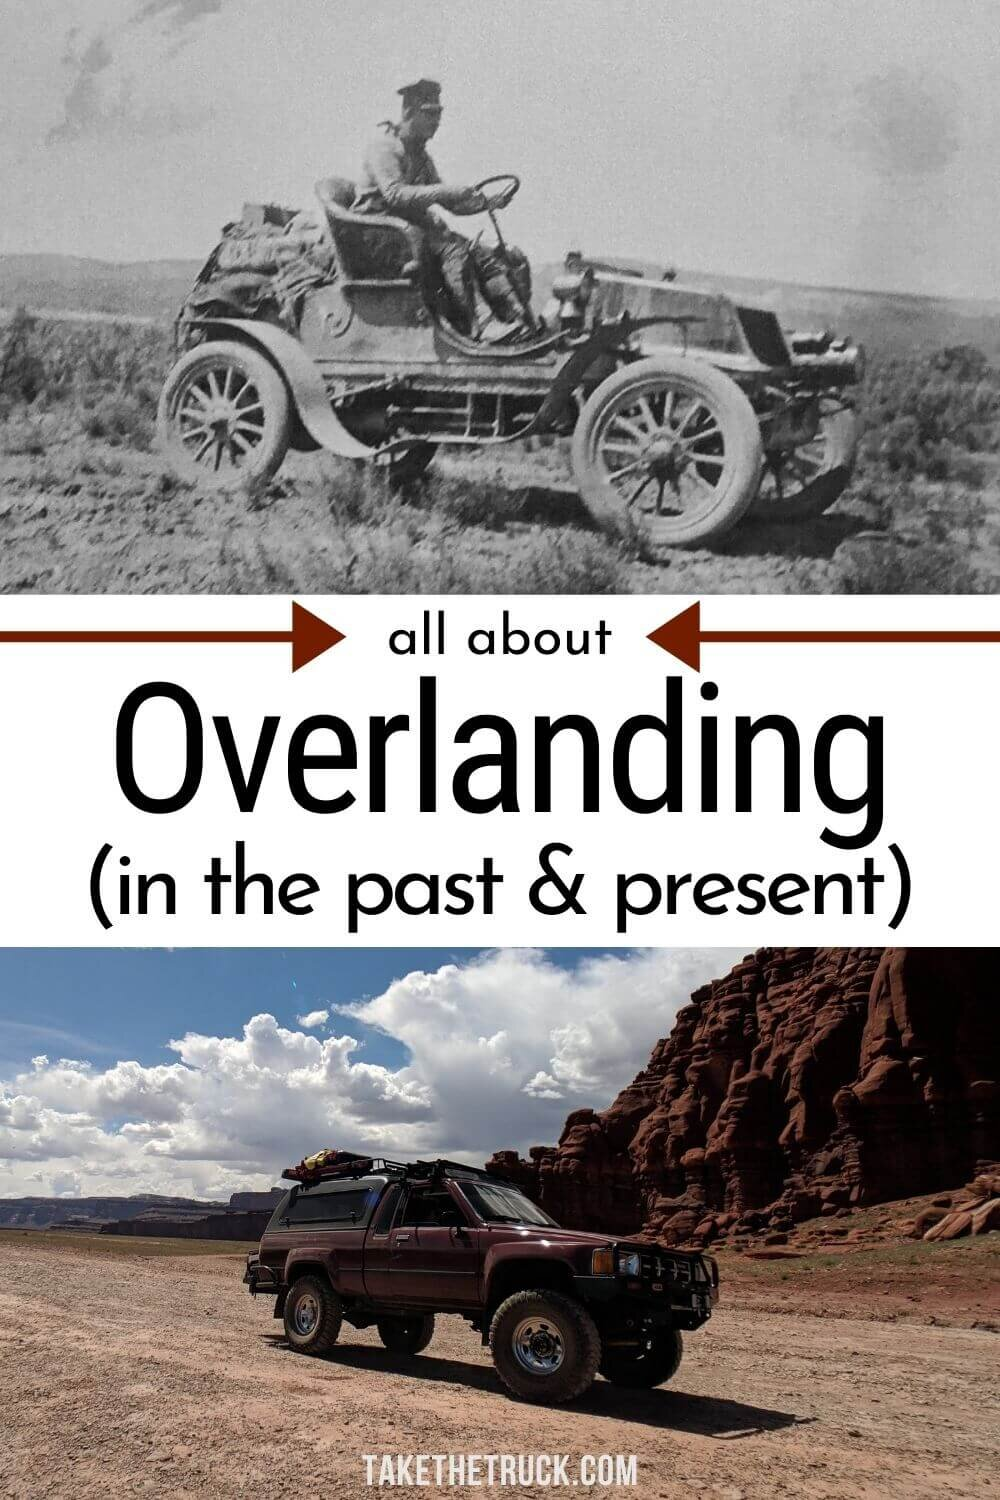 Fun and quick read about the history of overlanding and overland travel in the U.S. Helps to answer the question, What is overlanding? and gives some overlanding basics for beginners.